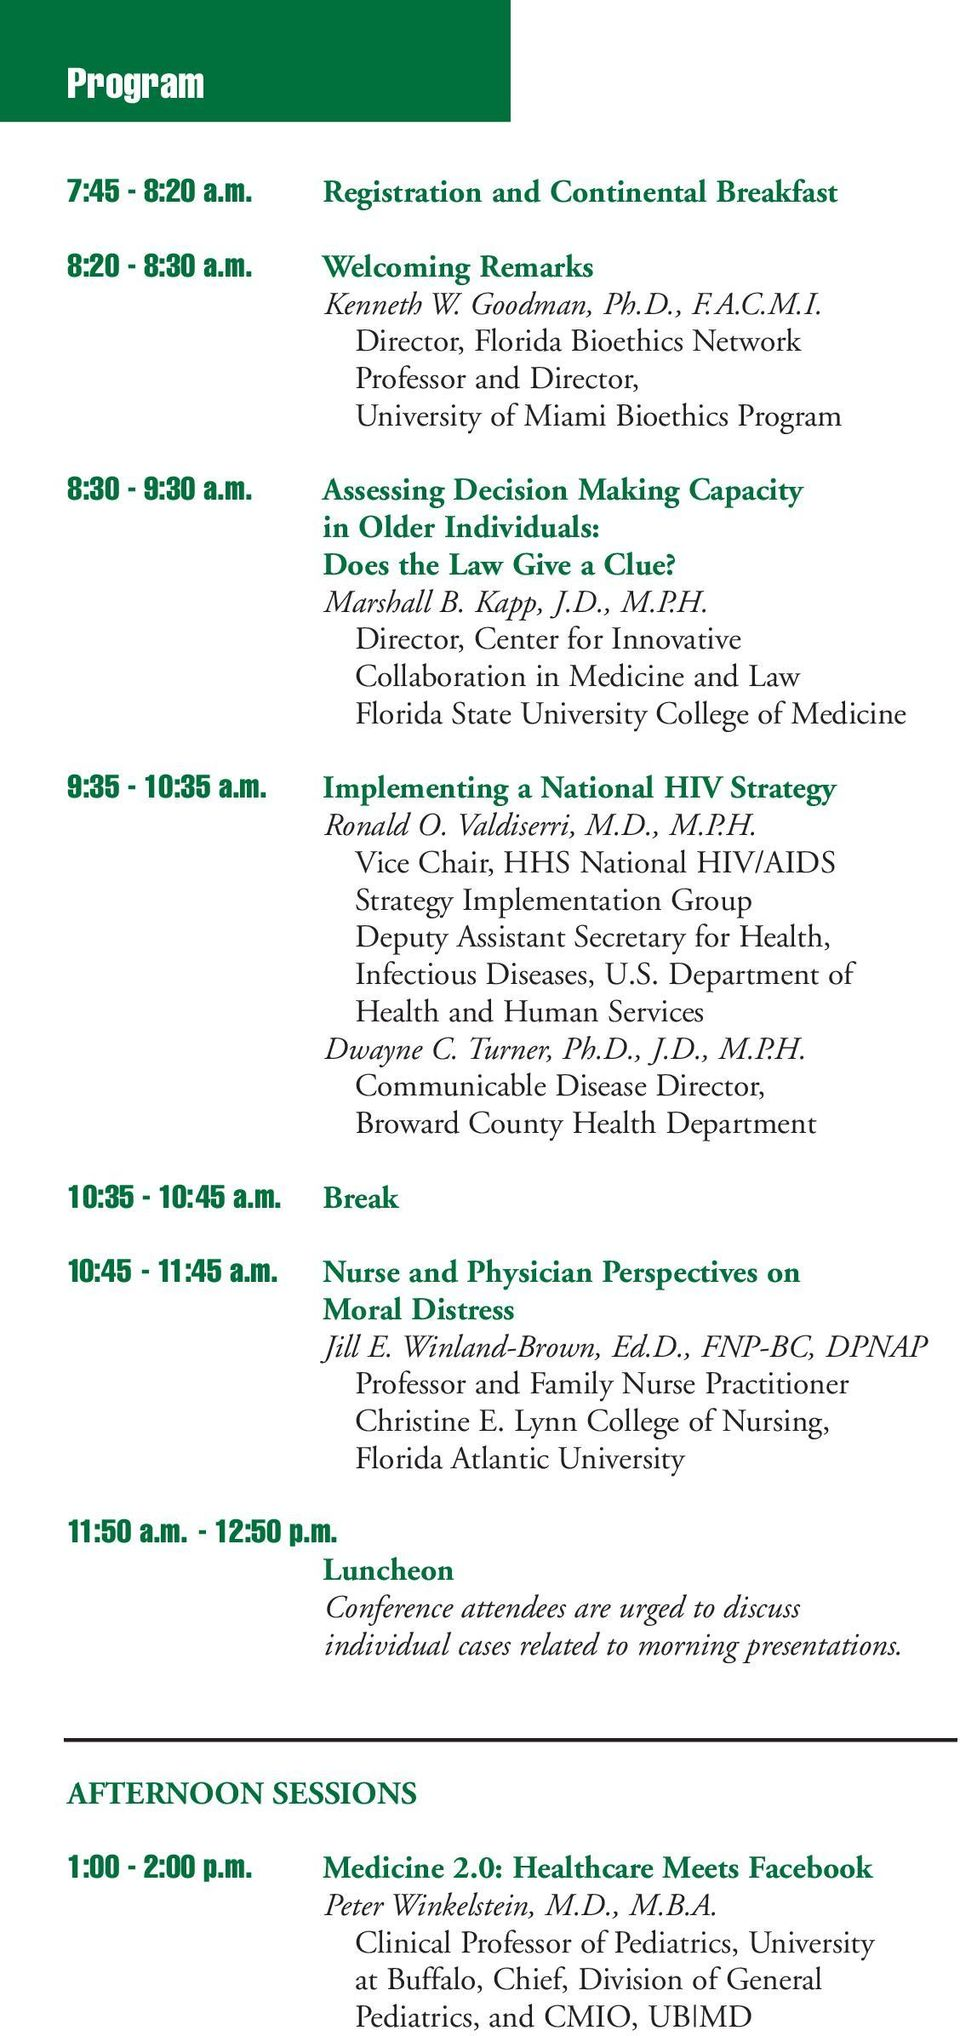 Marshall B. Kapp, J.D., M.P.H. Director, Center for Innovative Collaboration in Medicine and Law Florida State University College of Medicine 9:35-10:35 a.m.